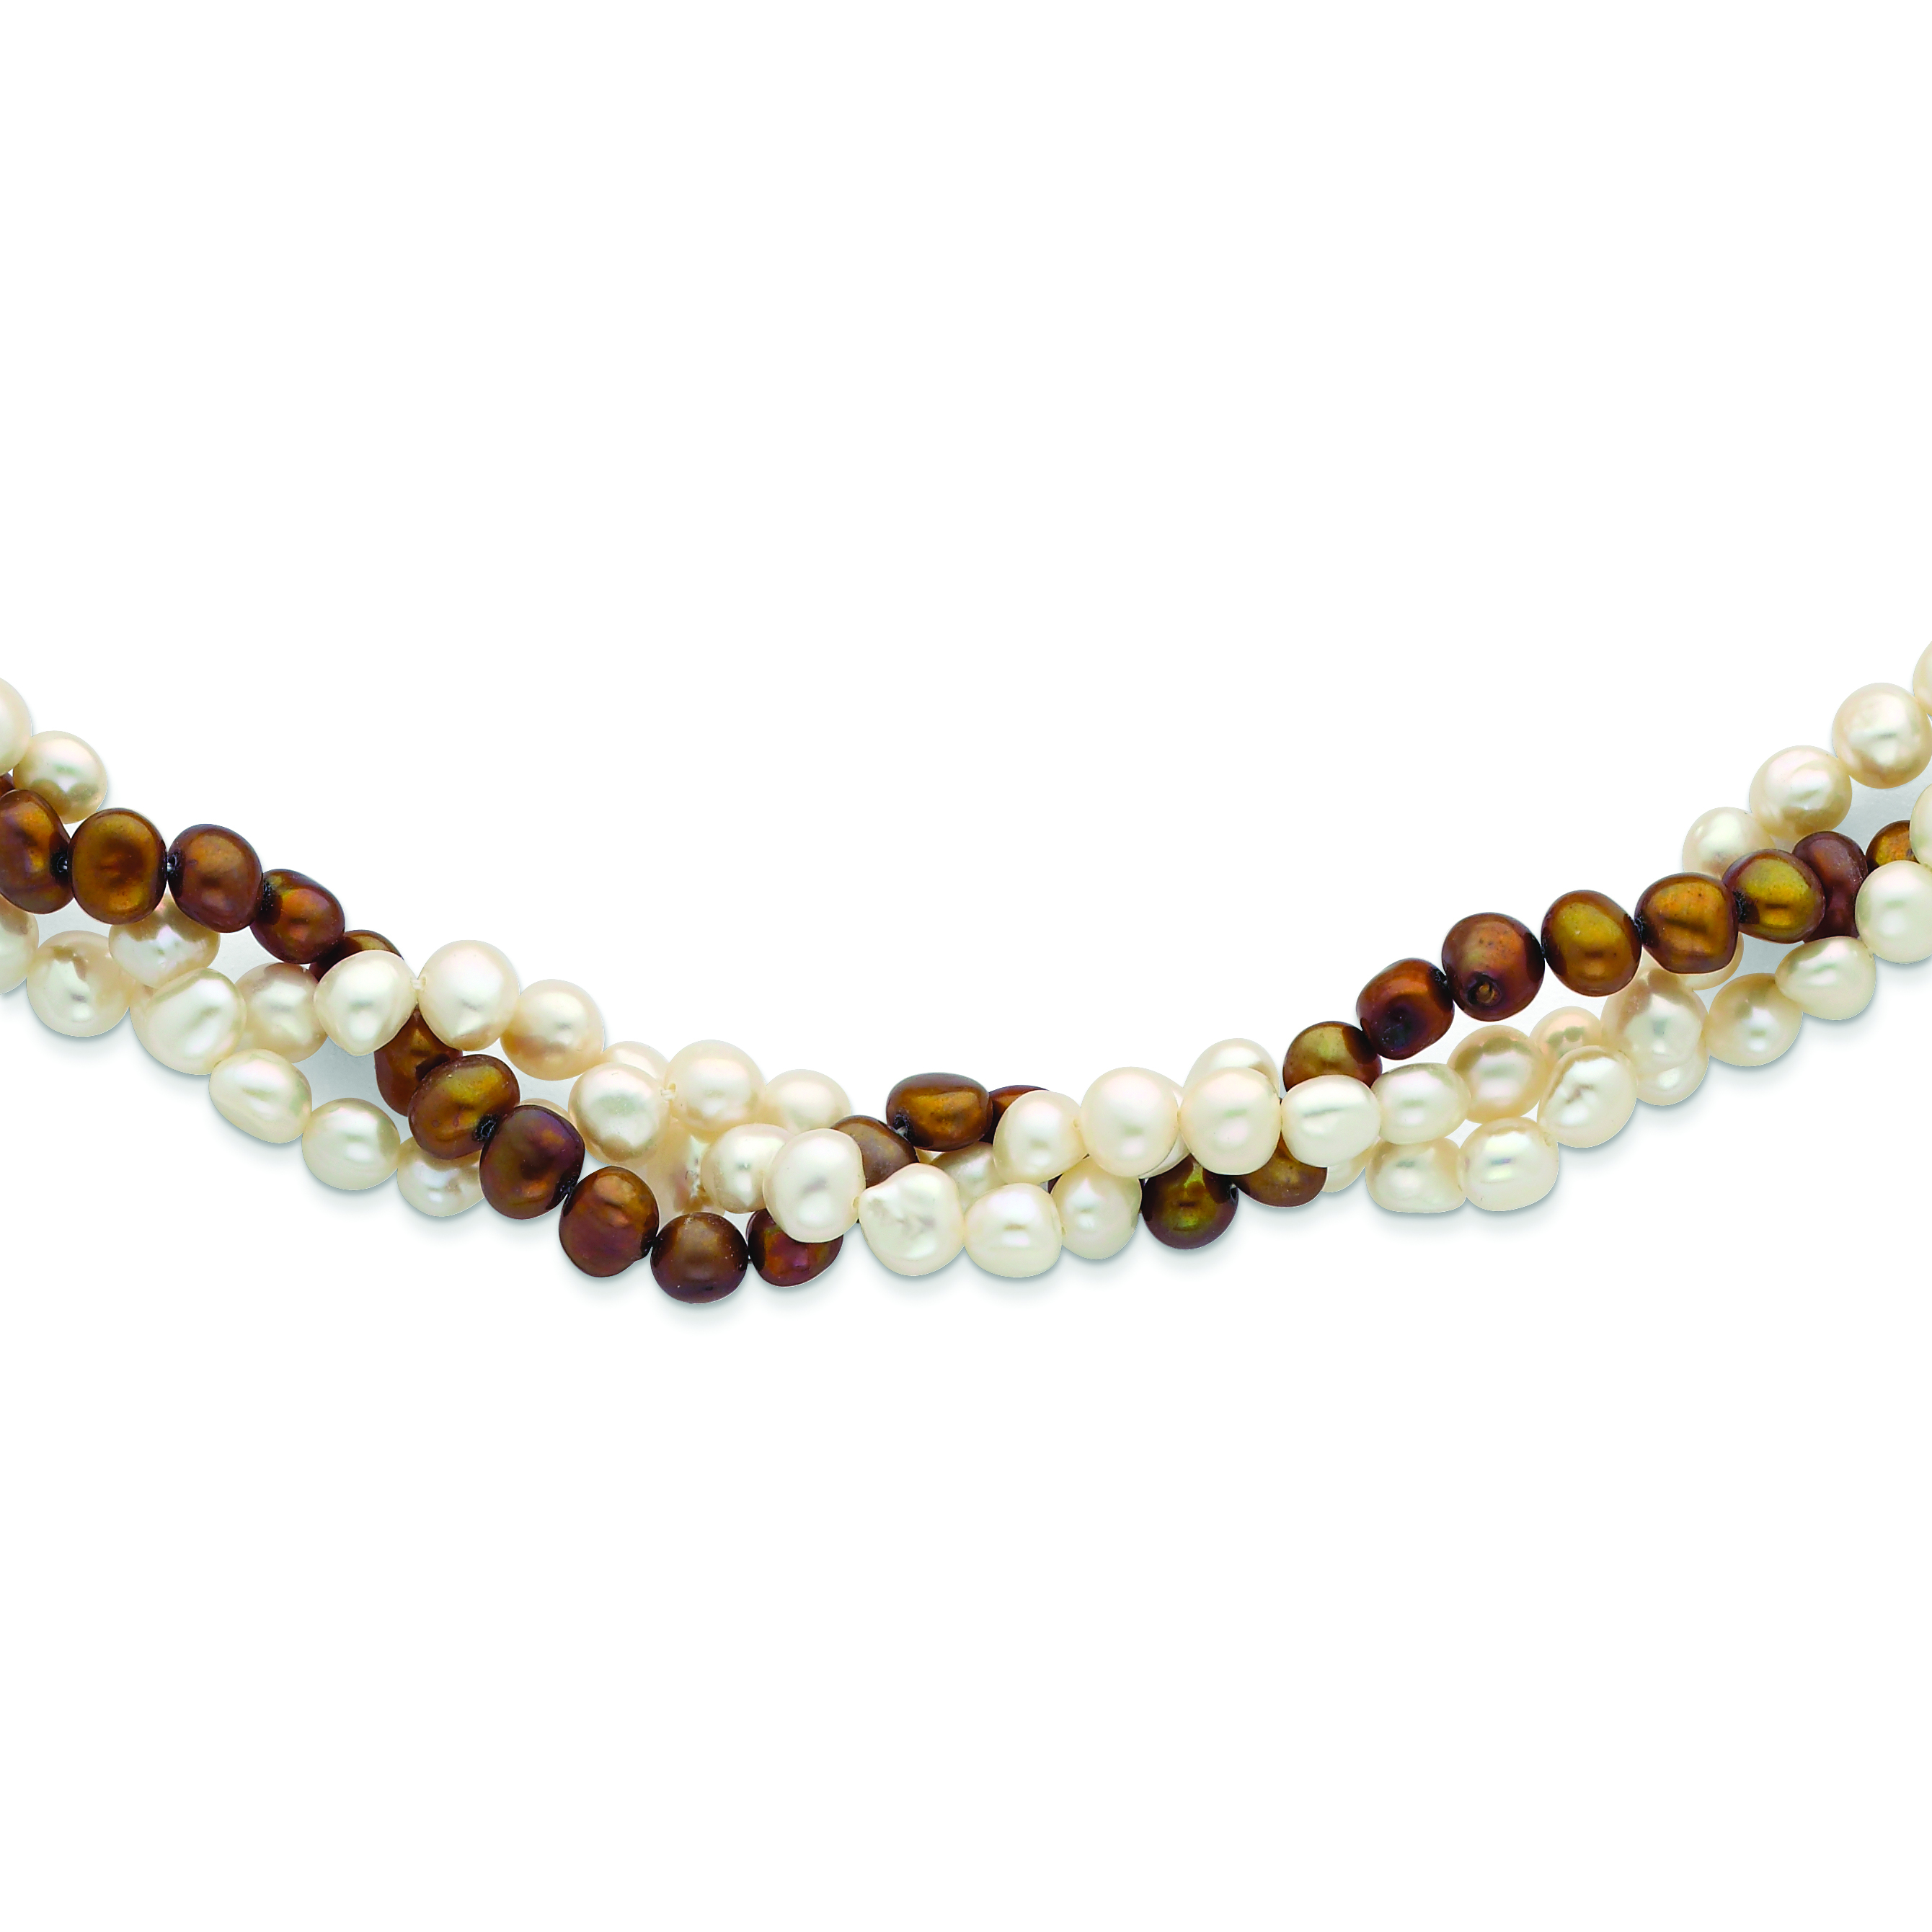 17 Inch 925 Sterling Silver Rhod-plat 6-7mm White Button Freshwater Cultured Pearl Necklace